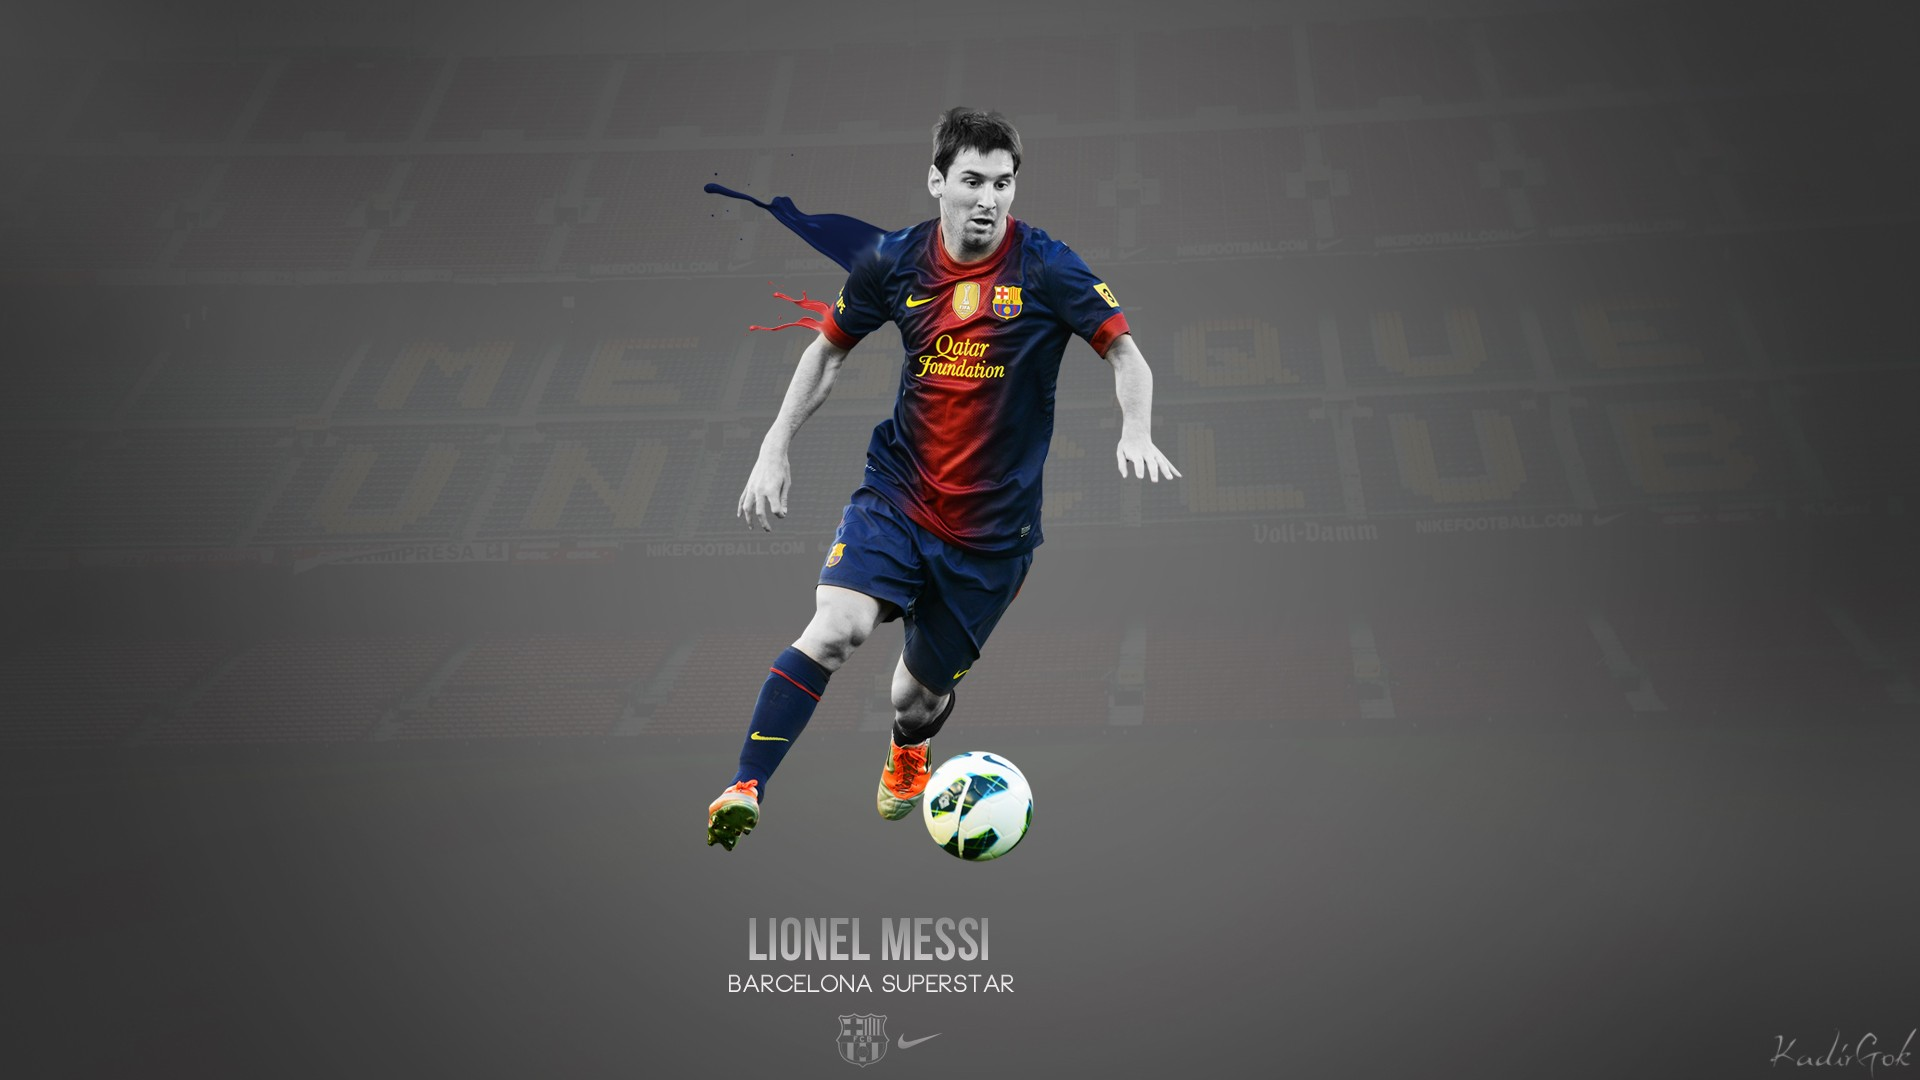 Lionel Messi Wallpaper Background Download HD 1920x1080